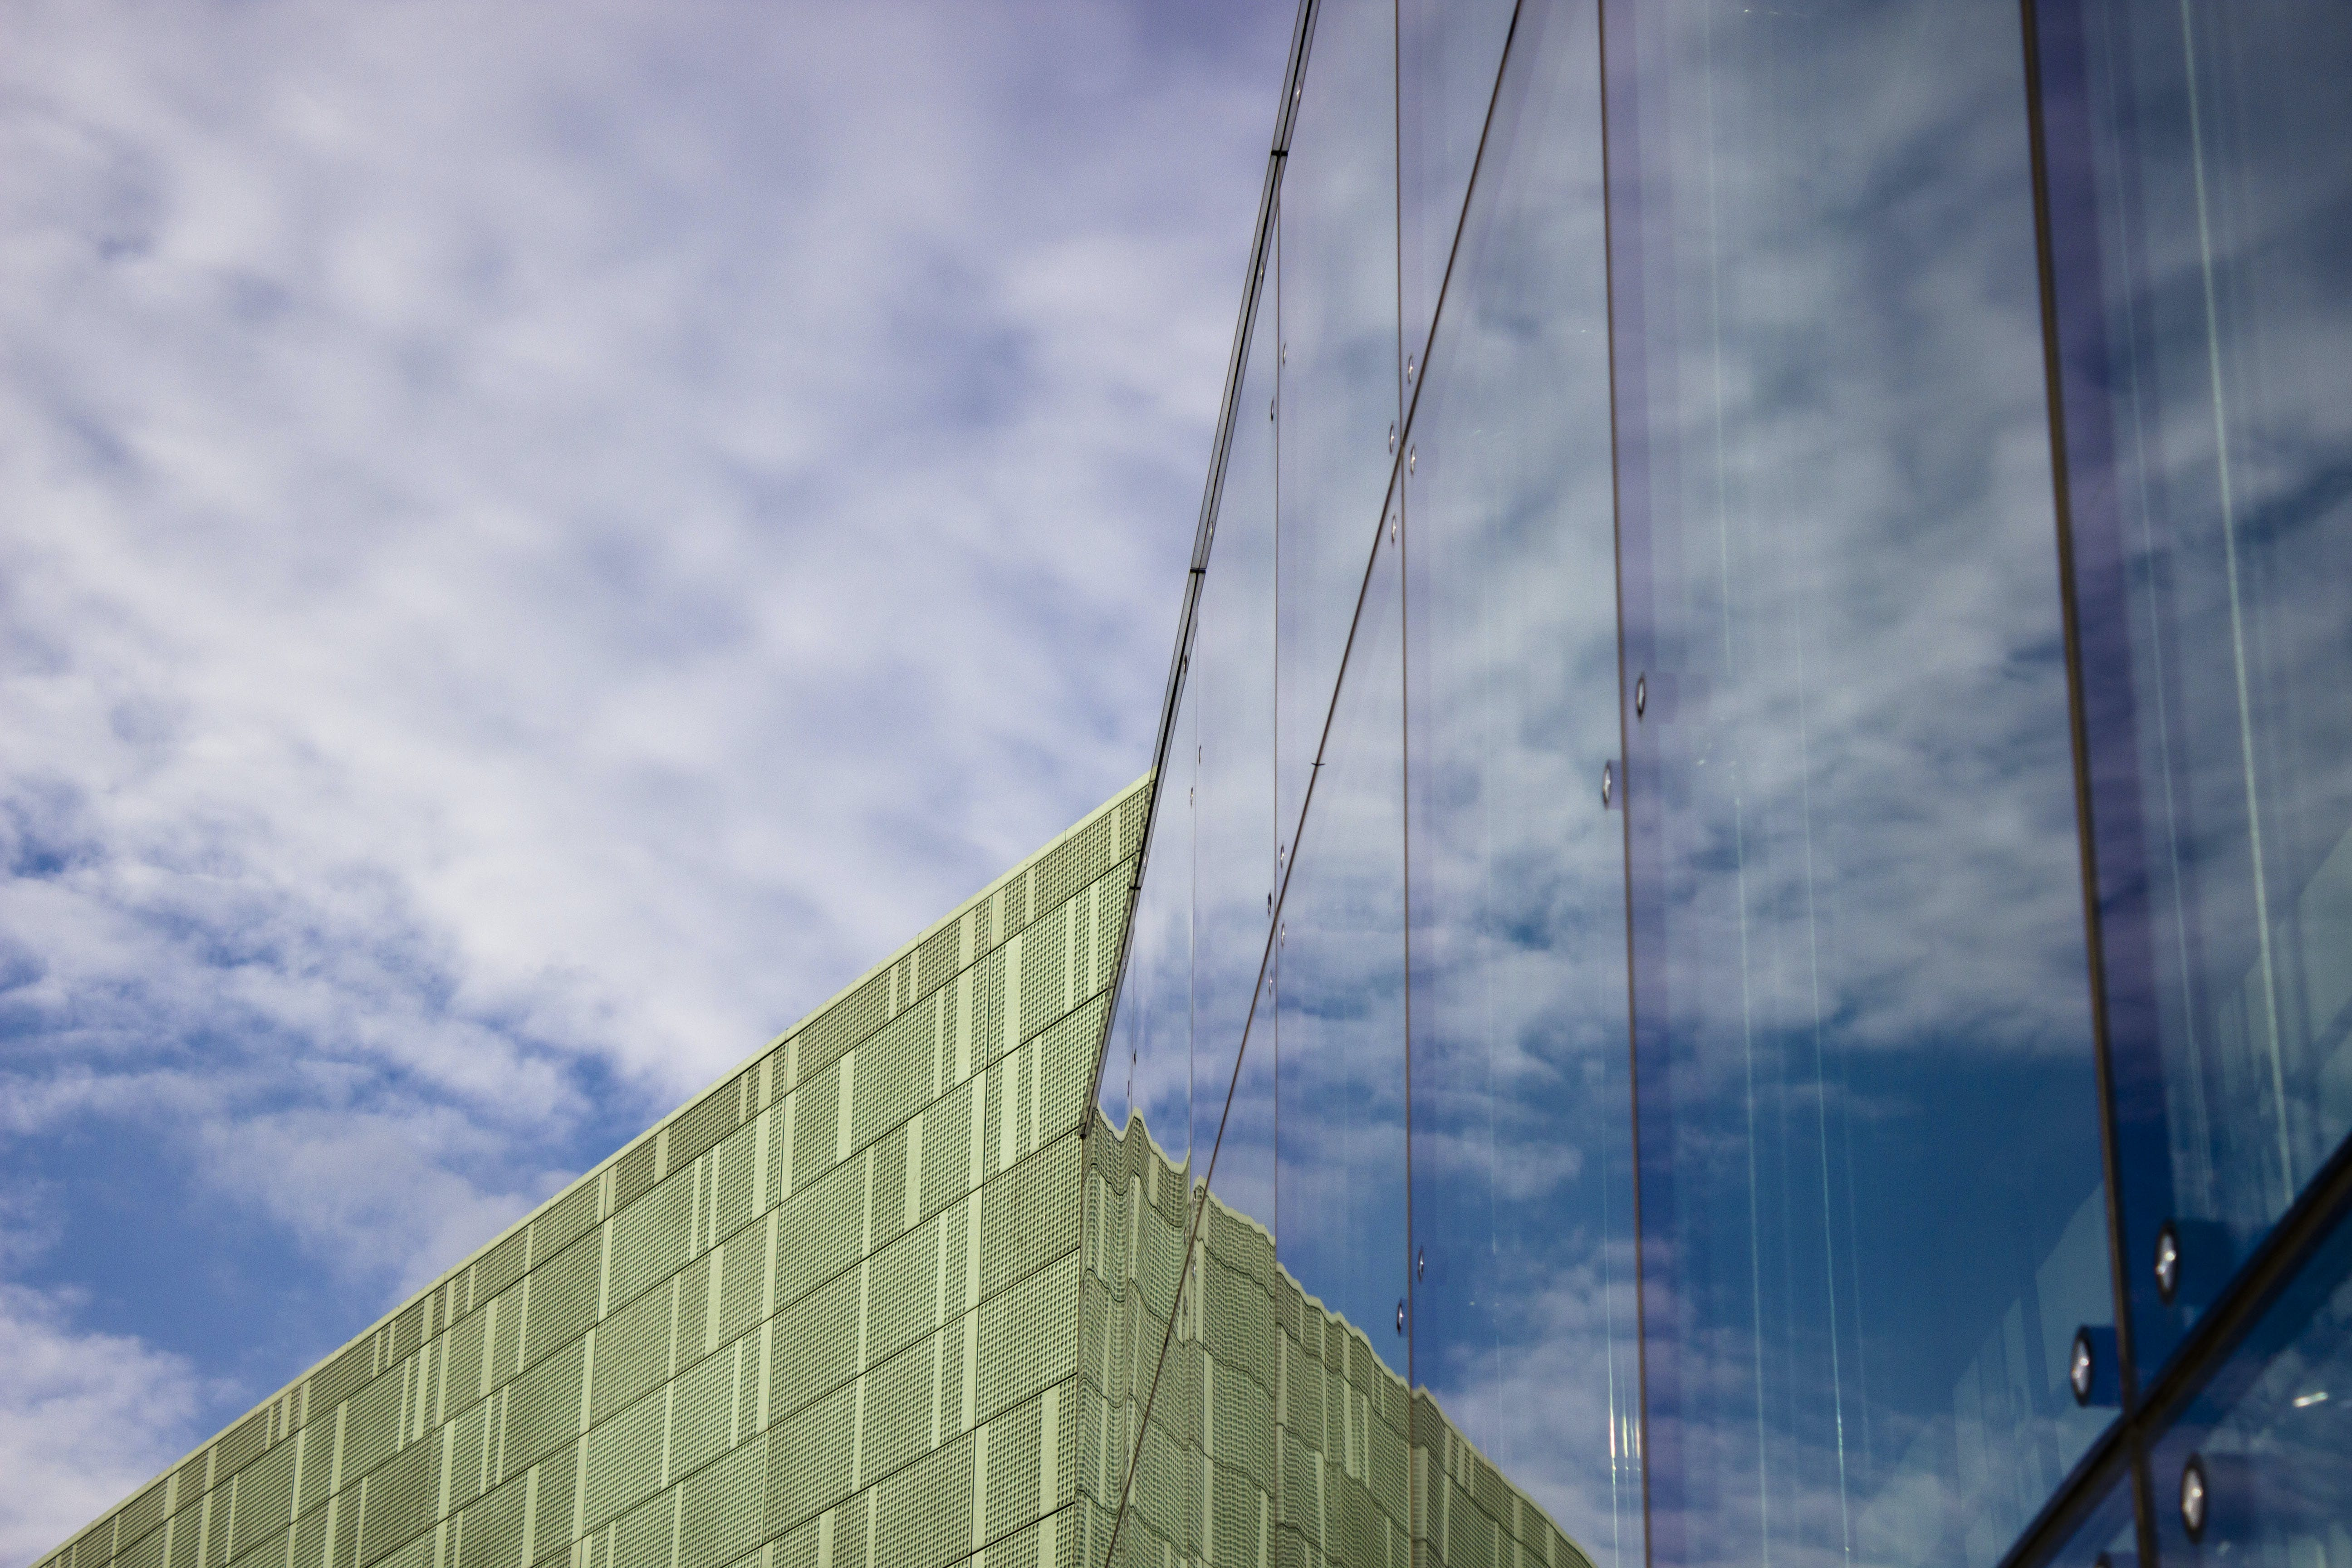 Free stock photo of clouds, reflections, museum, modern architecture